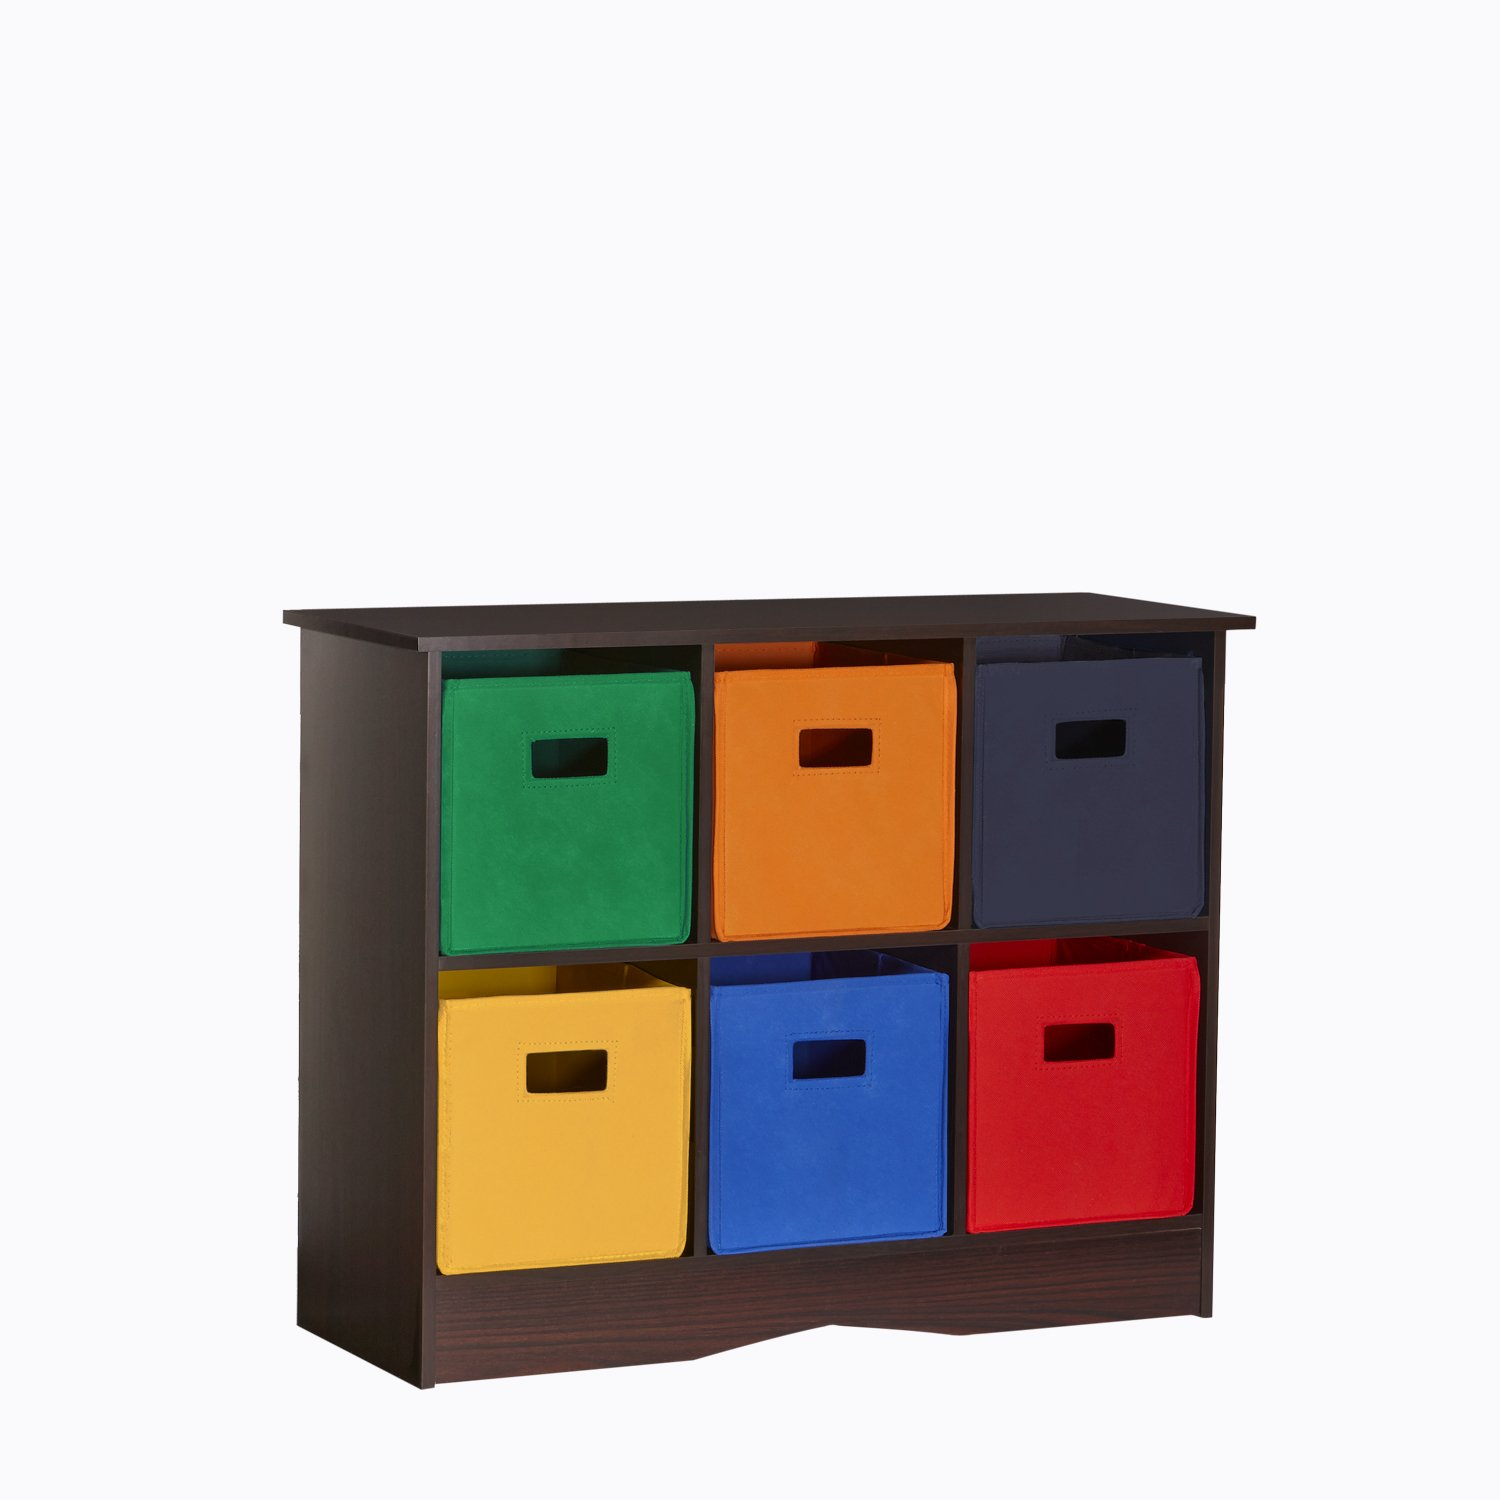 Espresso Primary RiverRidge 6 Bin Storage Cabinet for Kids, Espresso